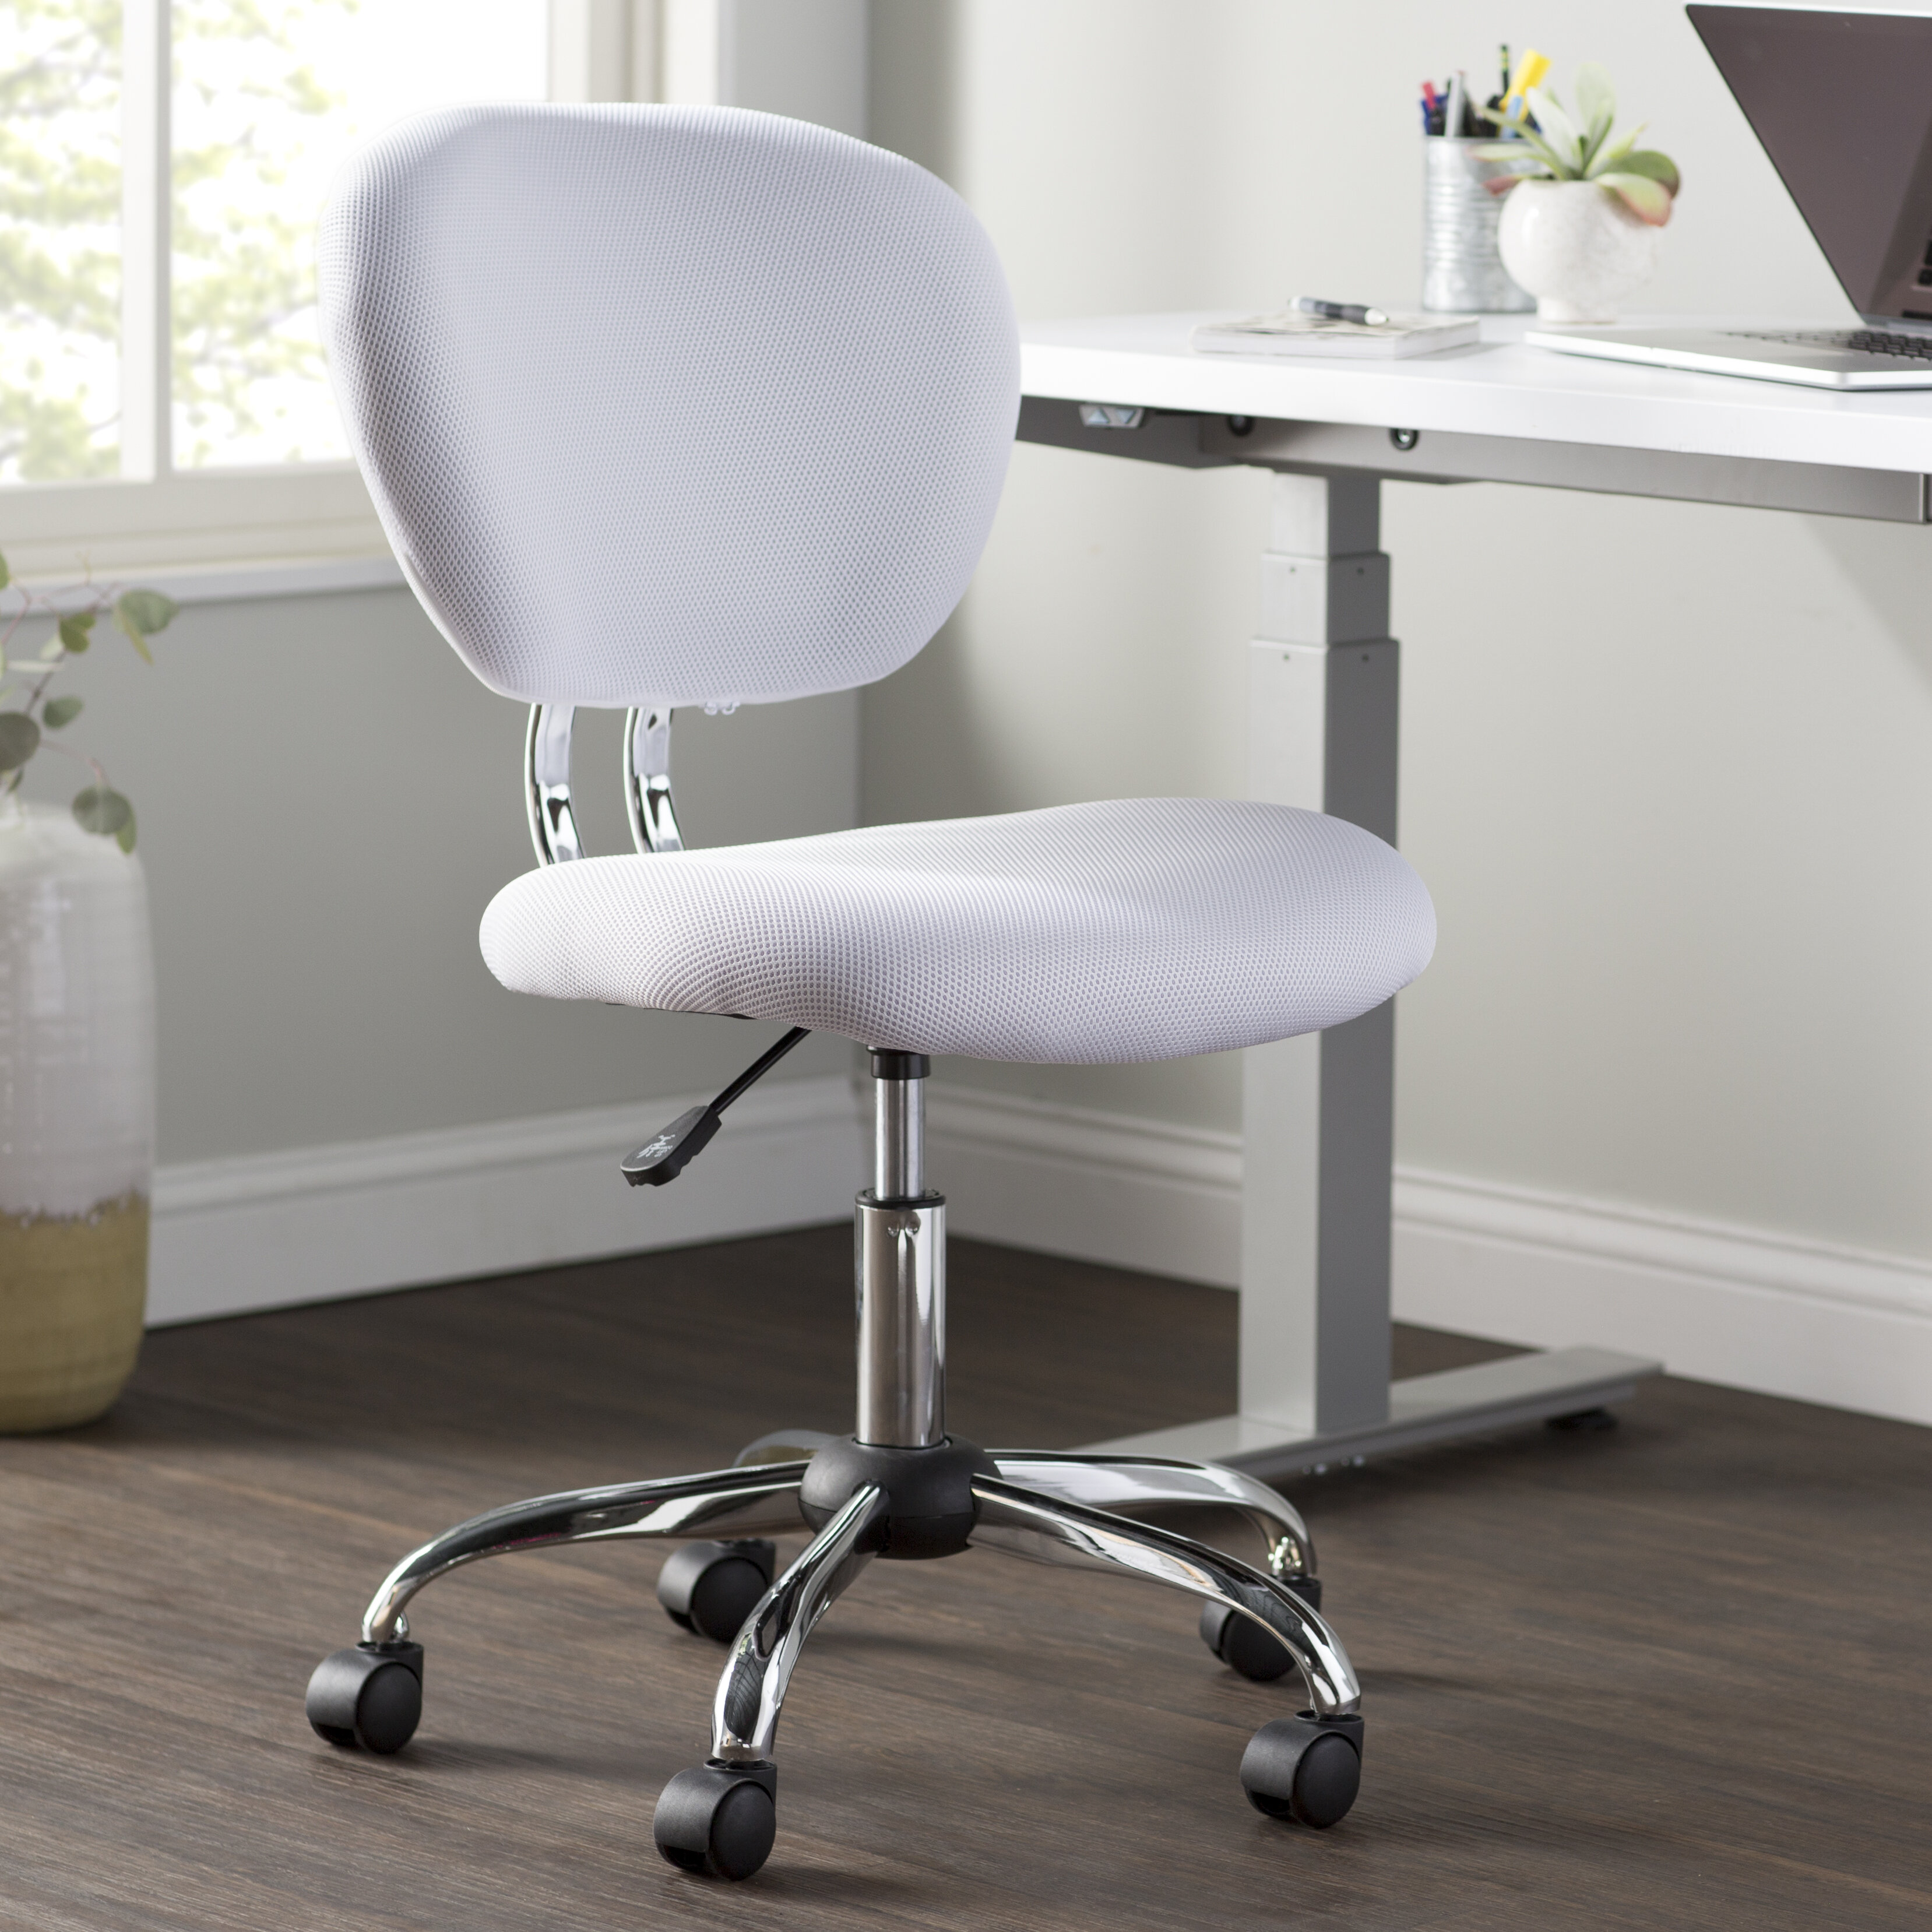 Merveilleux Wayfair Basics™ Wayfair Basics Office Chair U0026 Reviews | Wayfair